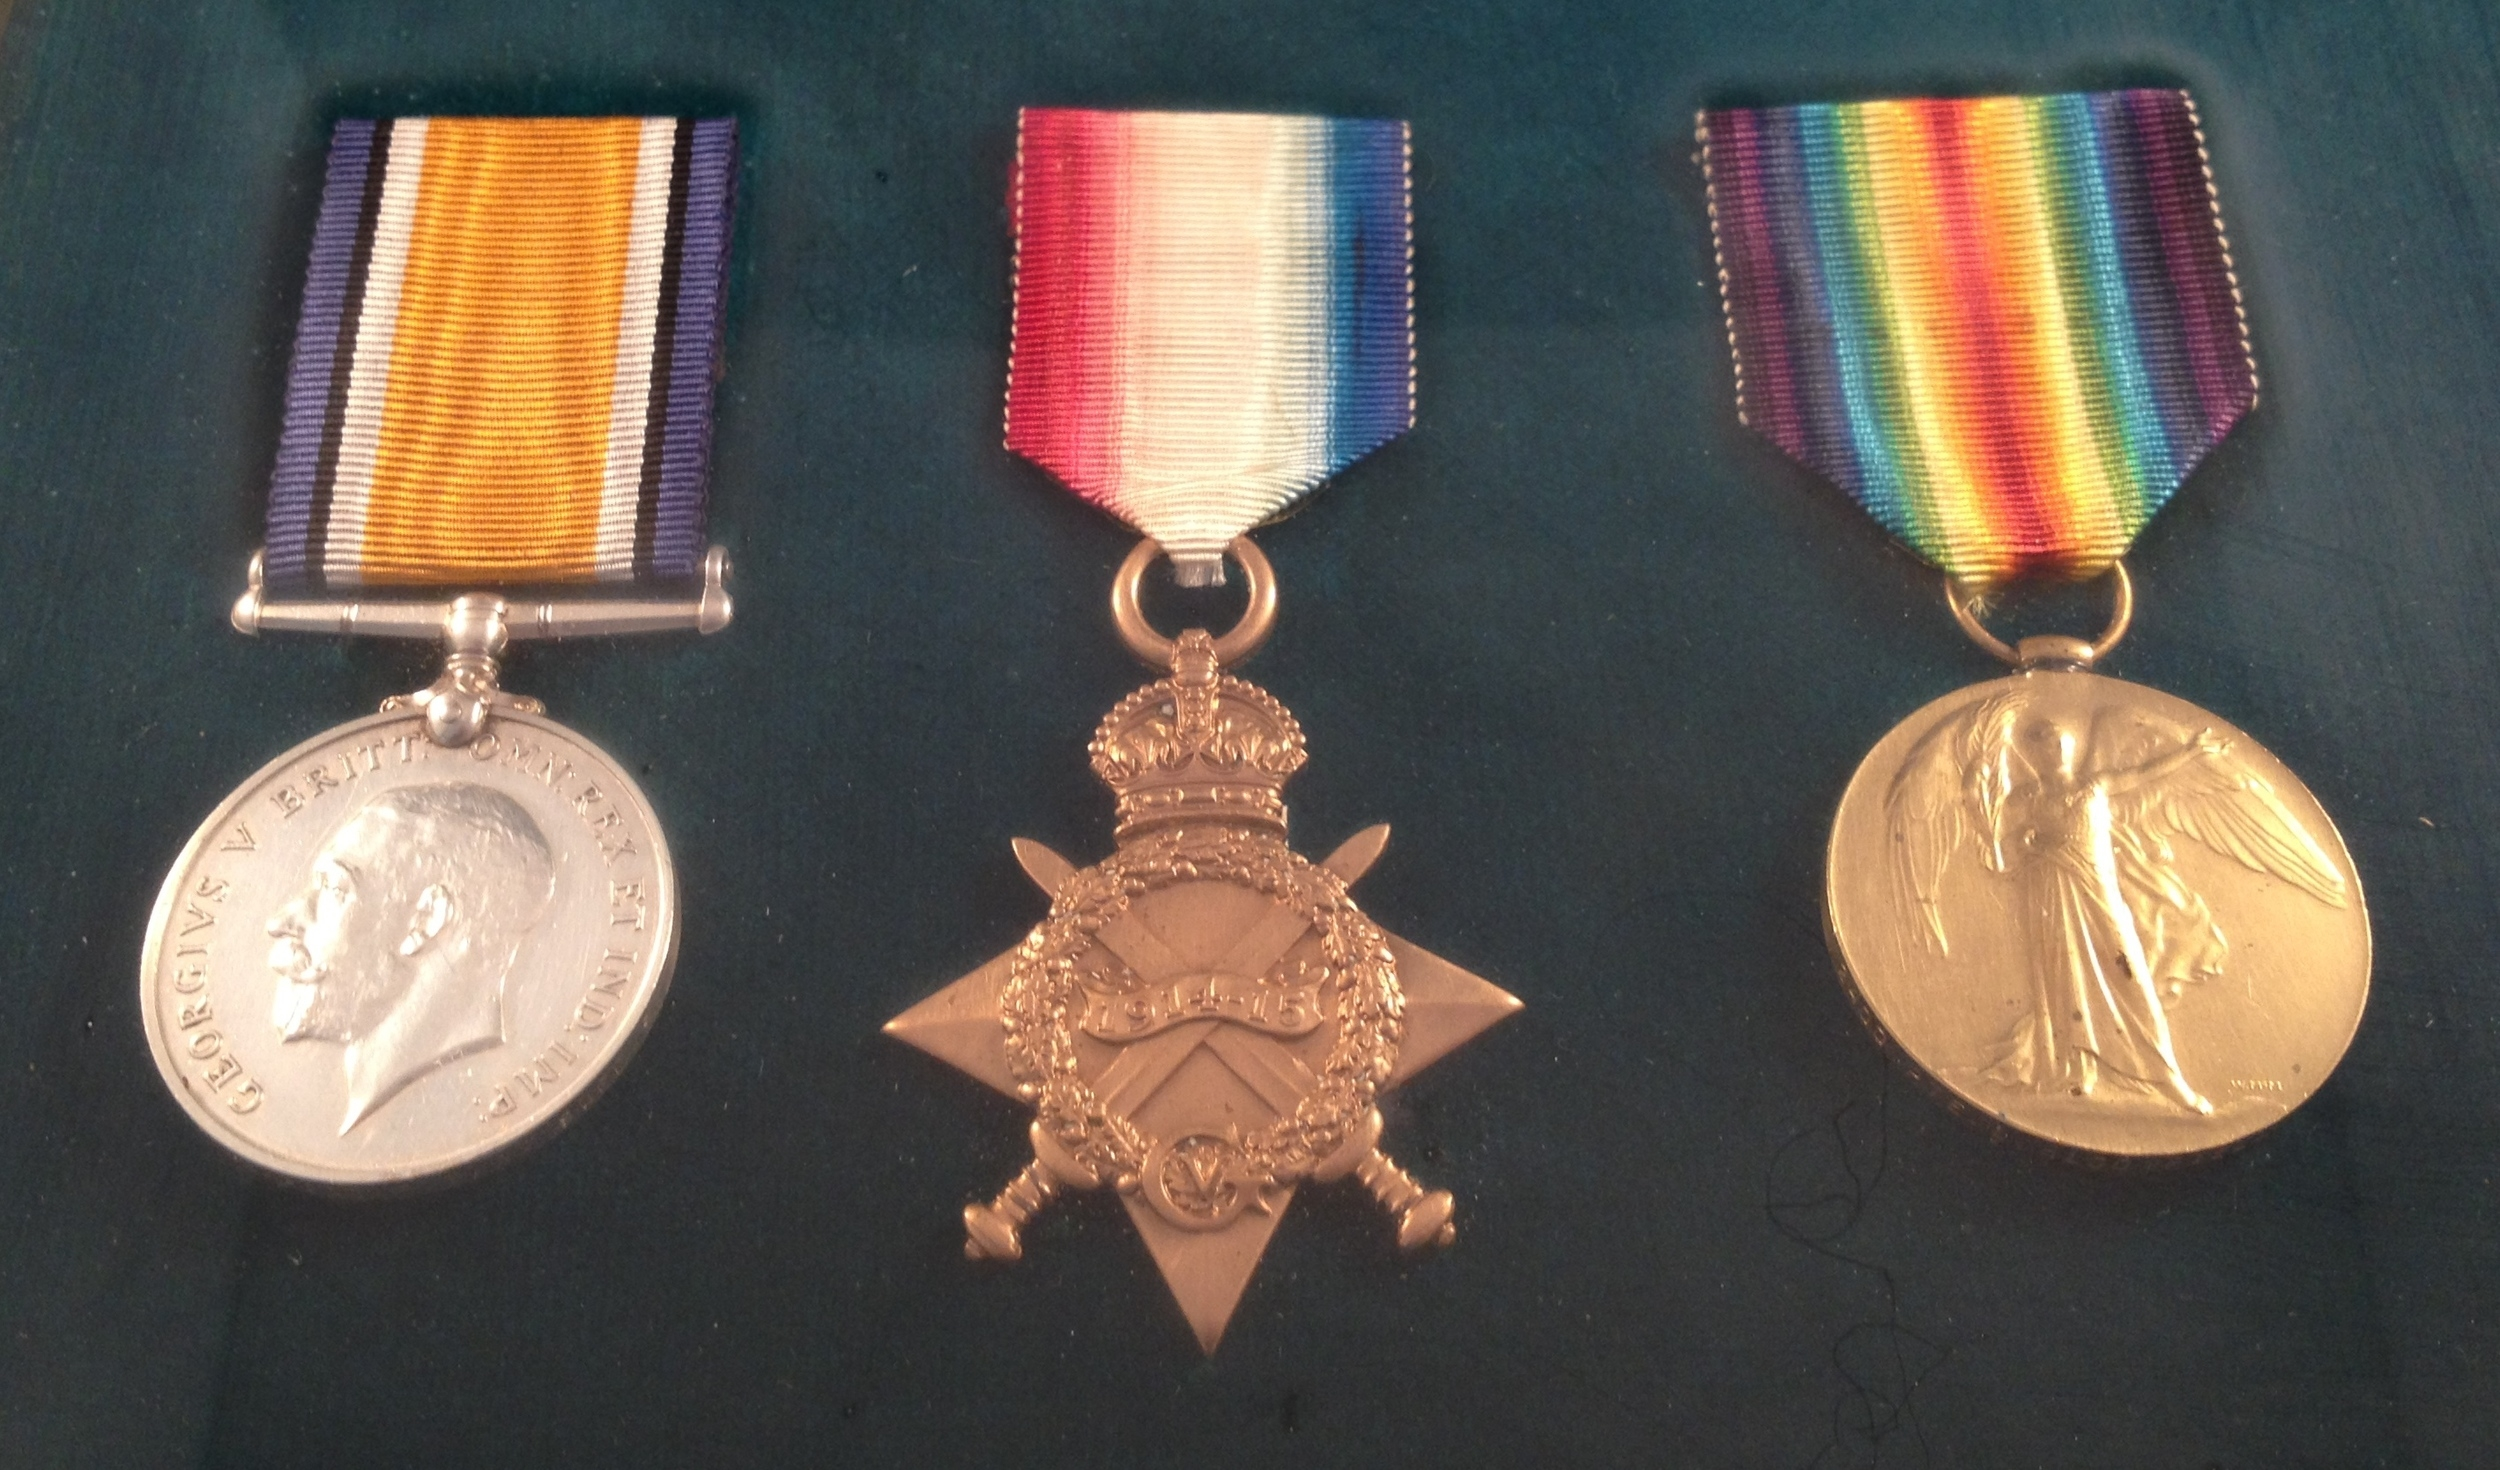 The whereabouts of James' medals are not known, however, he was entitled to the above three medals for his service during the Great War.